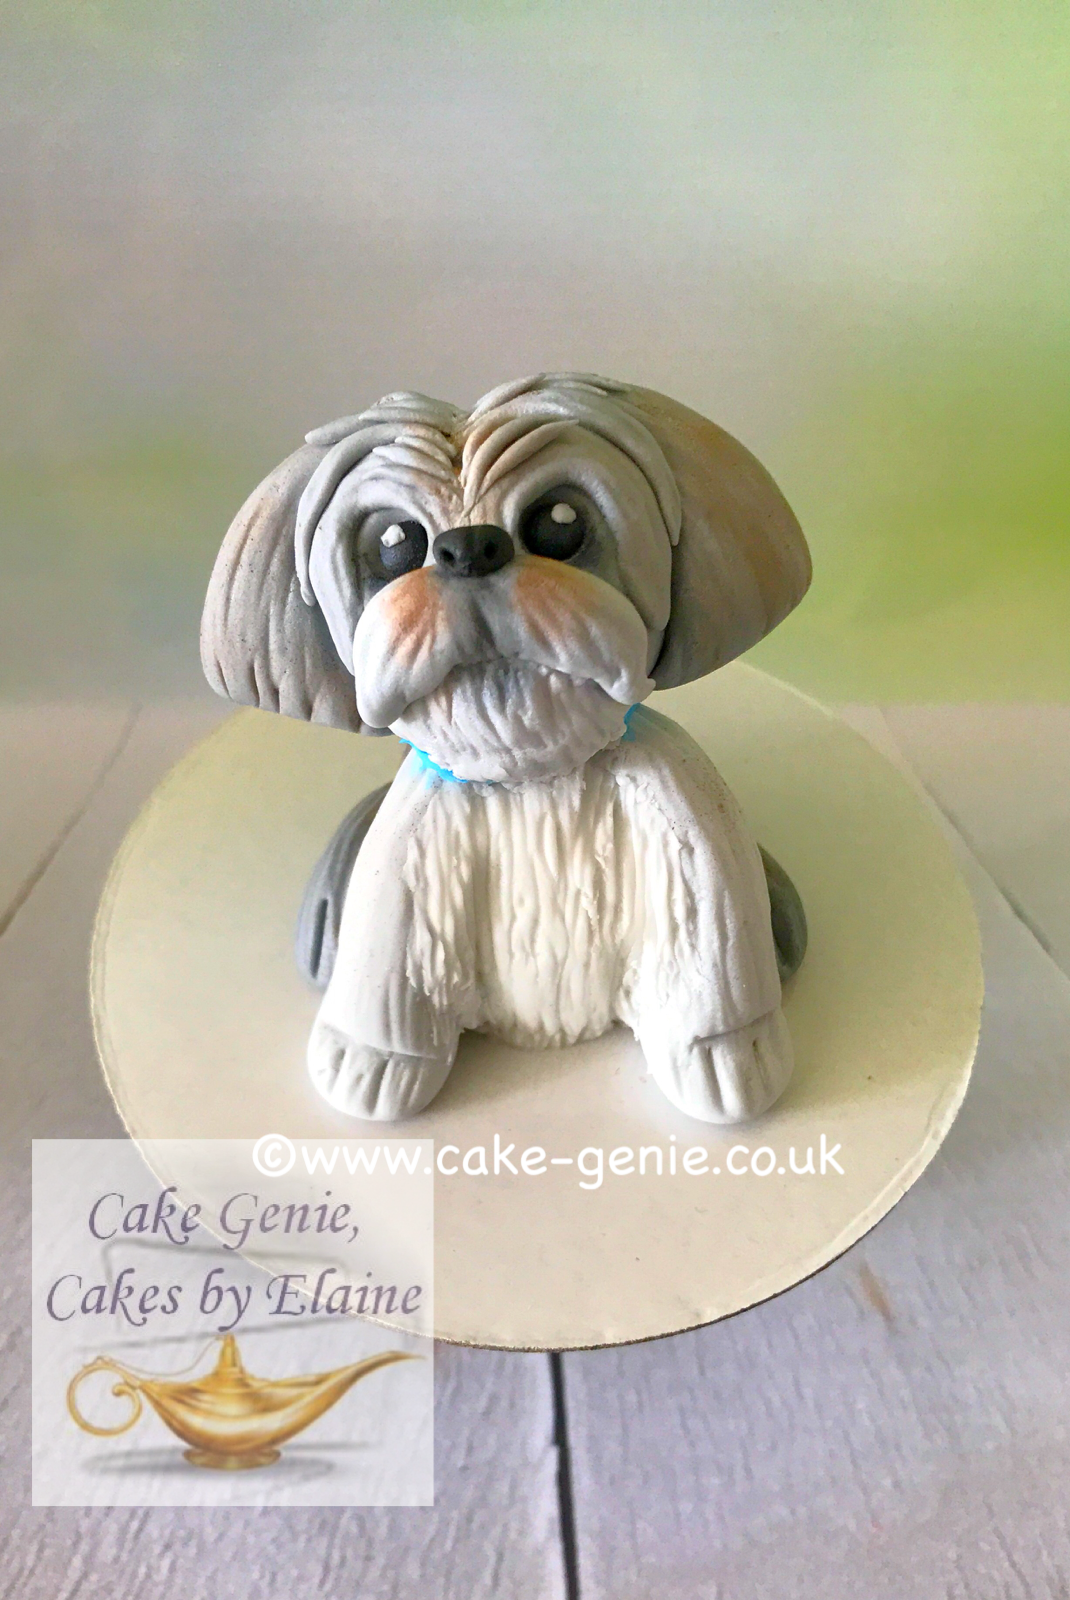 Shih Tzu Cake Topper Cake Toppers Pinterest Cake Cake Toppers